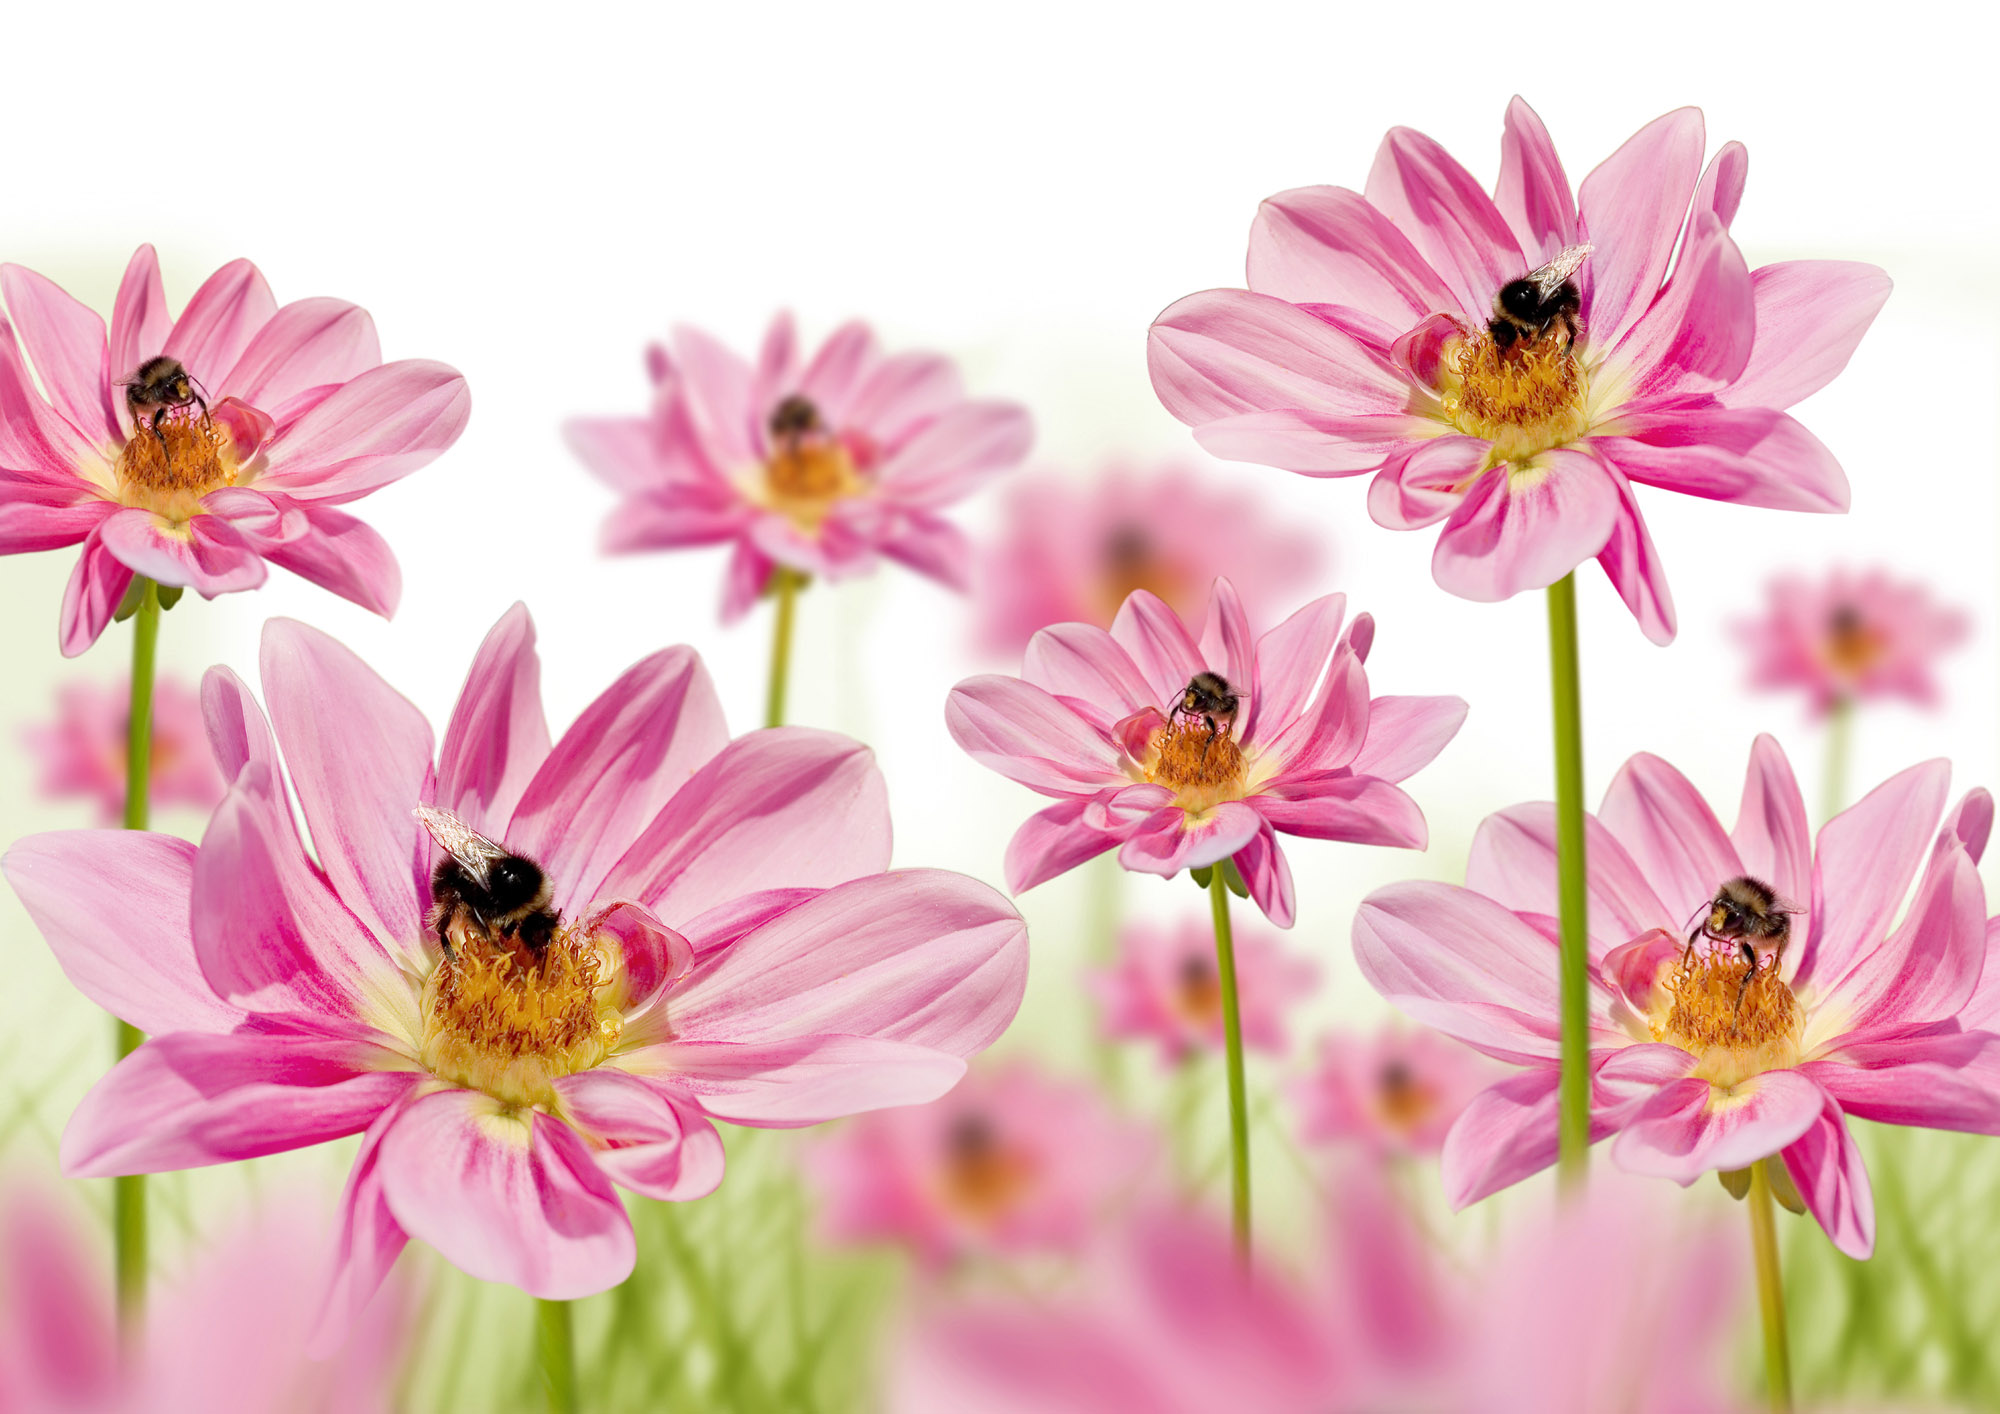 high-resolution photo flowers 26908 - flower wallpapers - flowers